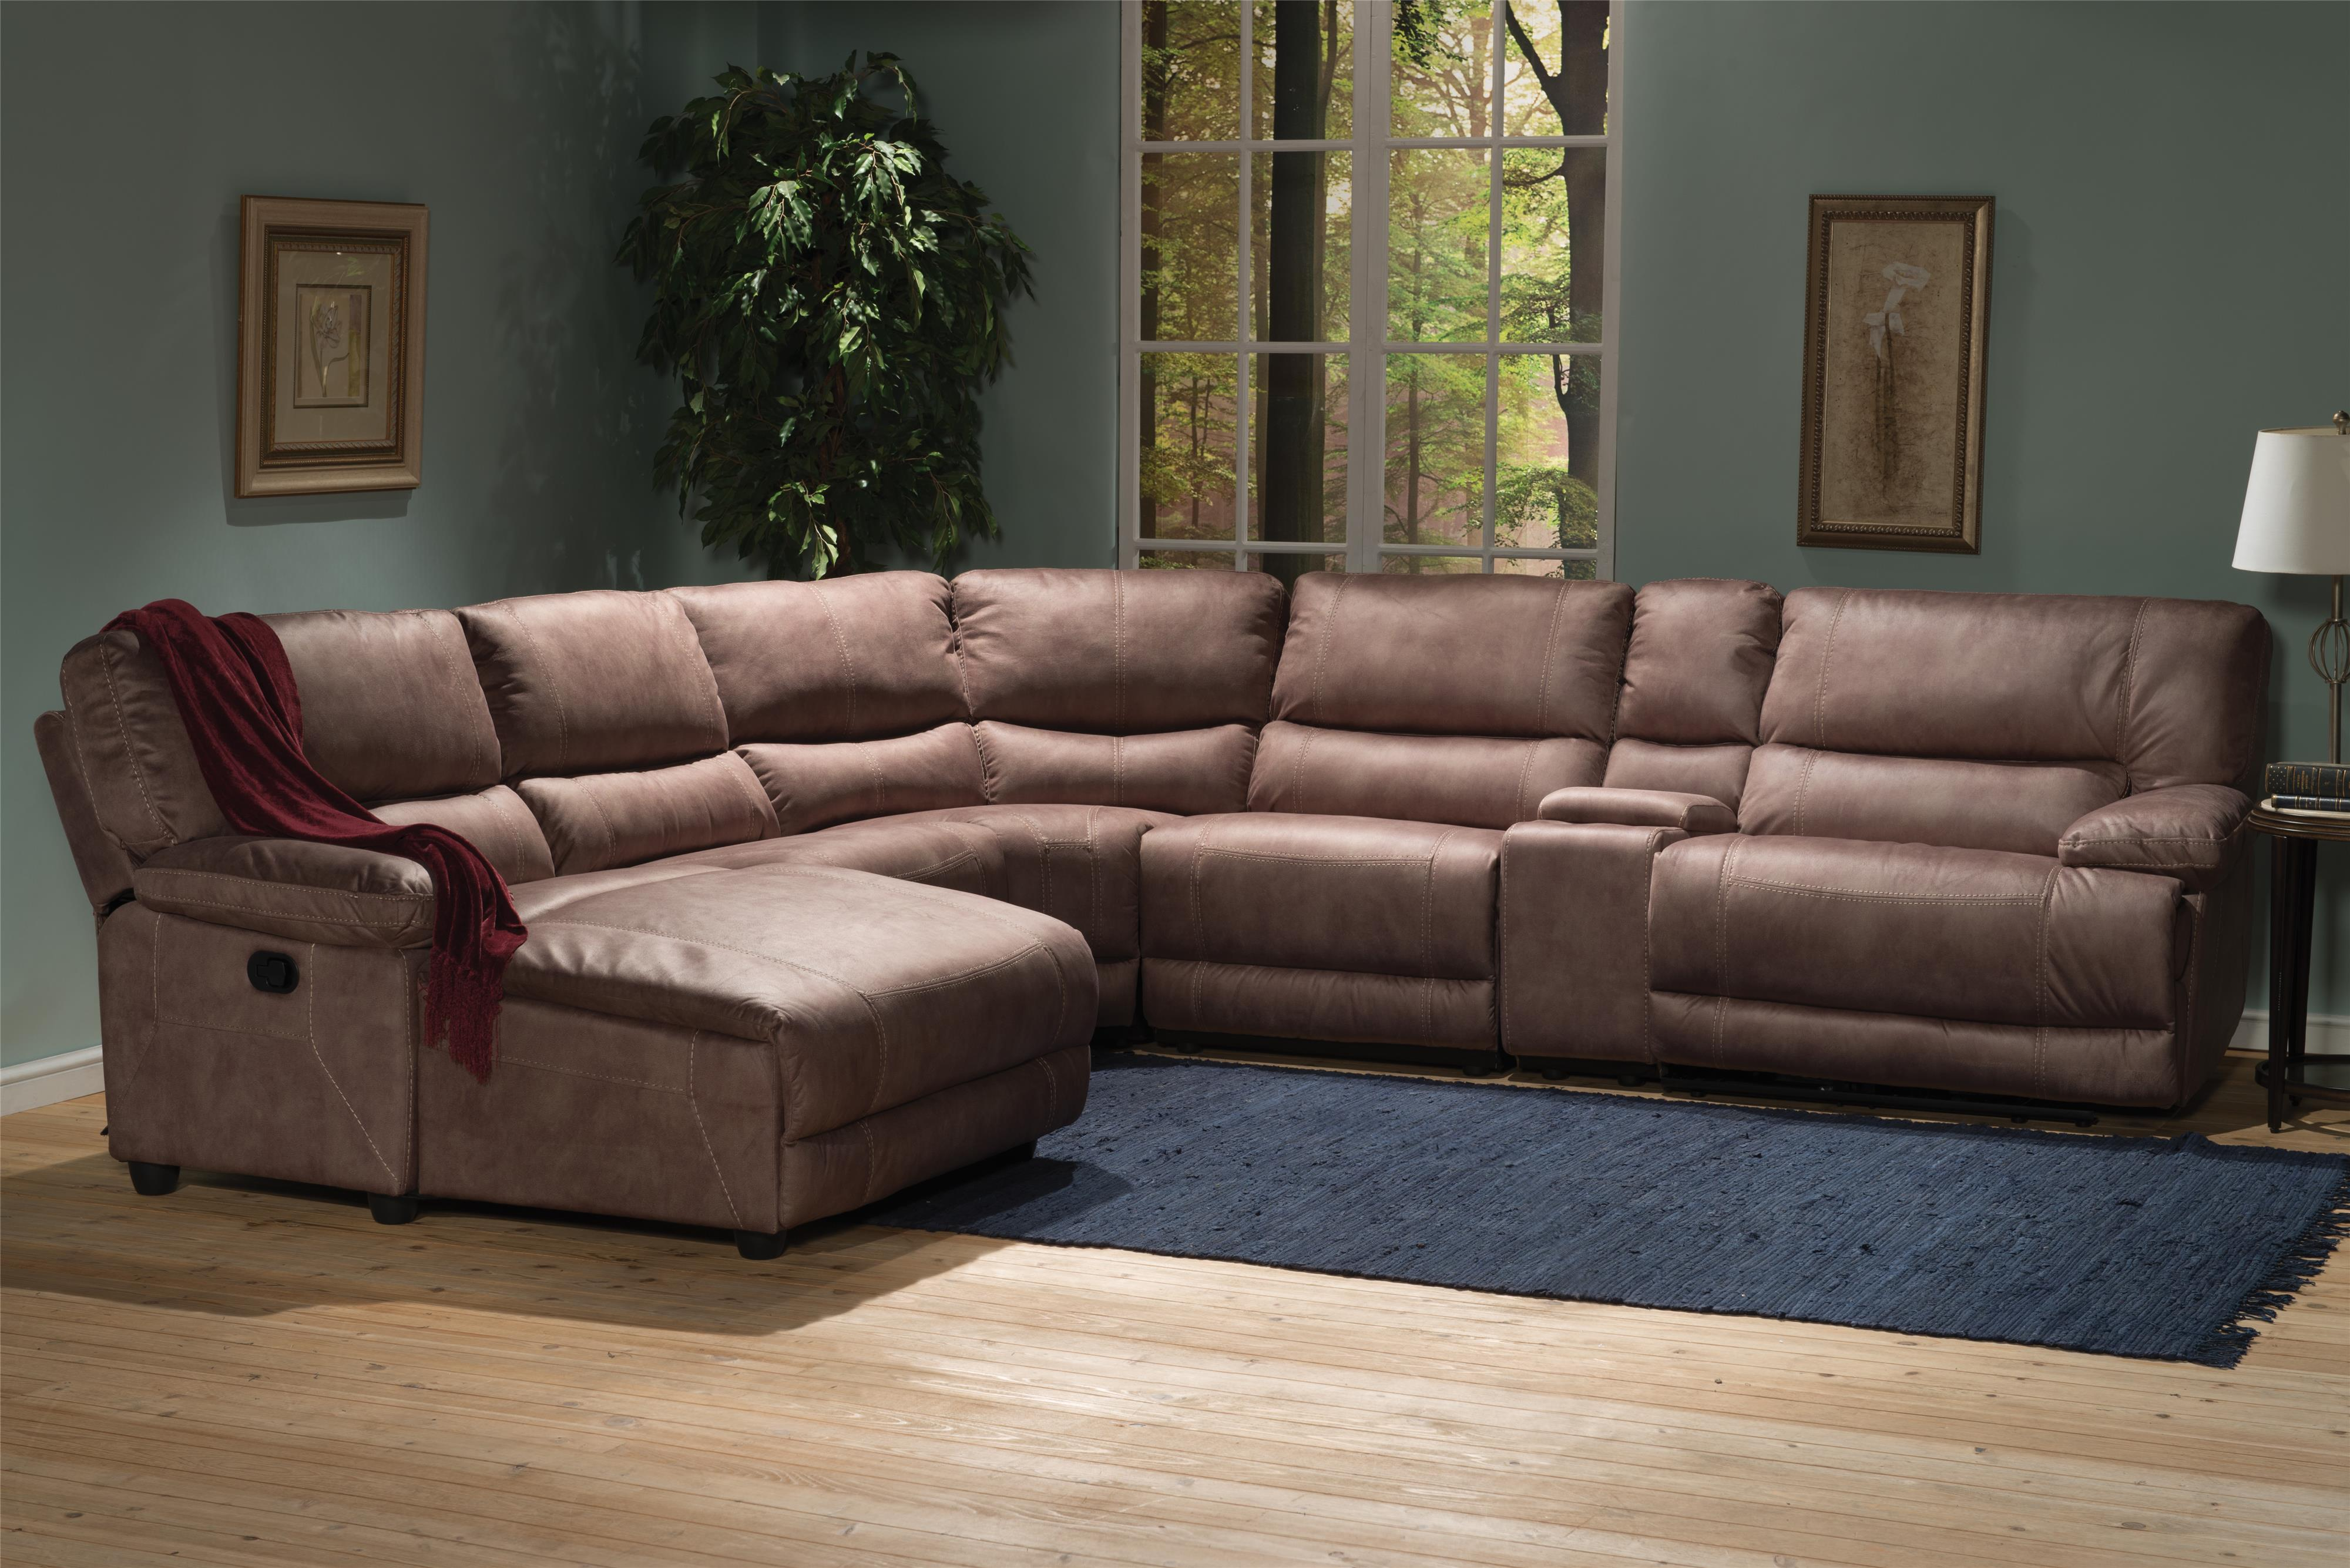 sectional as shown of choose to here fabrics across leather digby also hundreds in only pin from by sofa available flexsteel